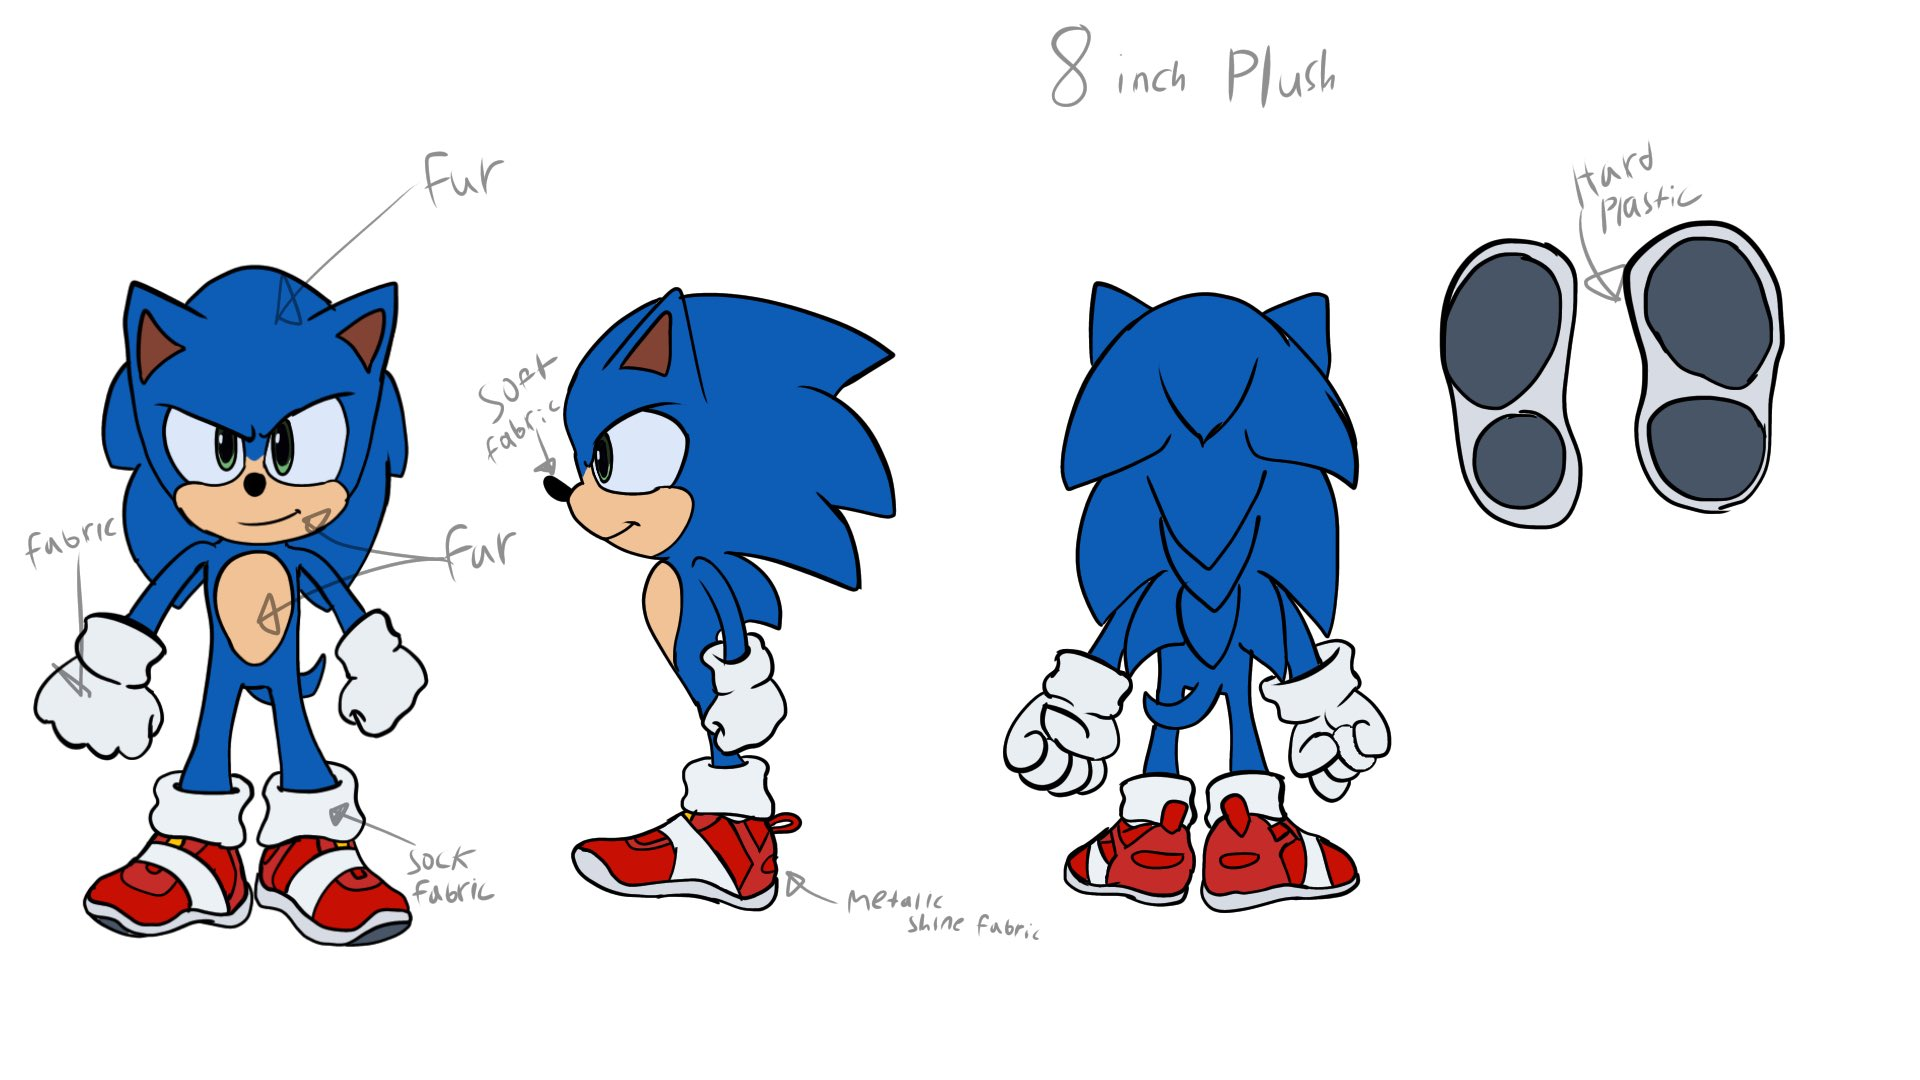 Snoc On Twitter Here S A Little Sonic Movie Plush Idea I Have In Mind I Hope Someone Can Make This